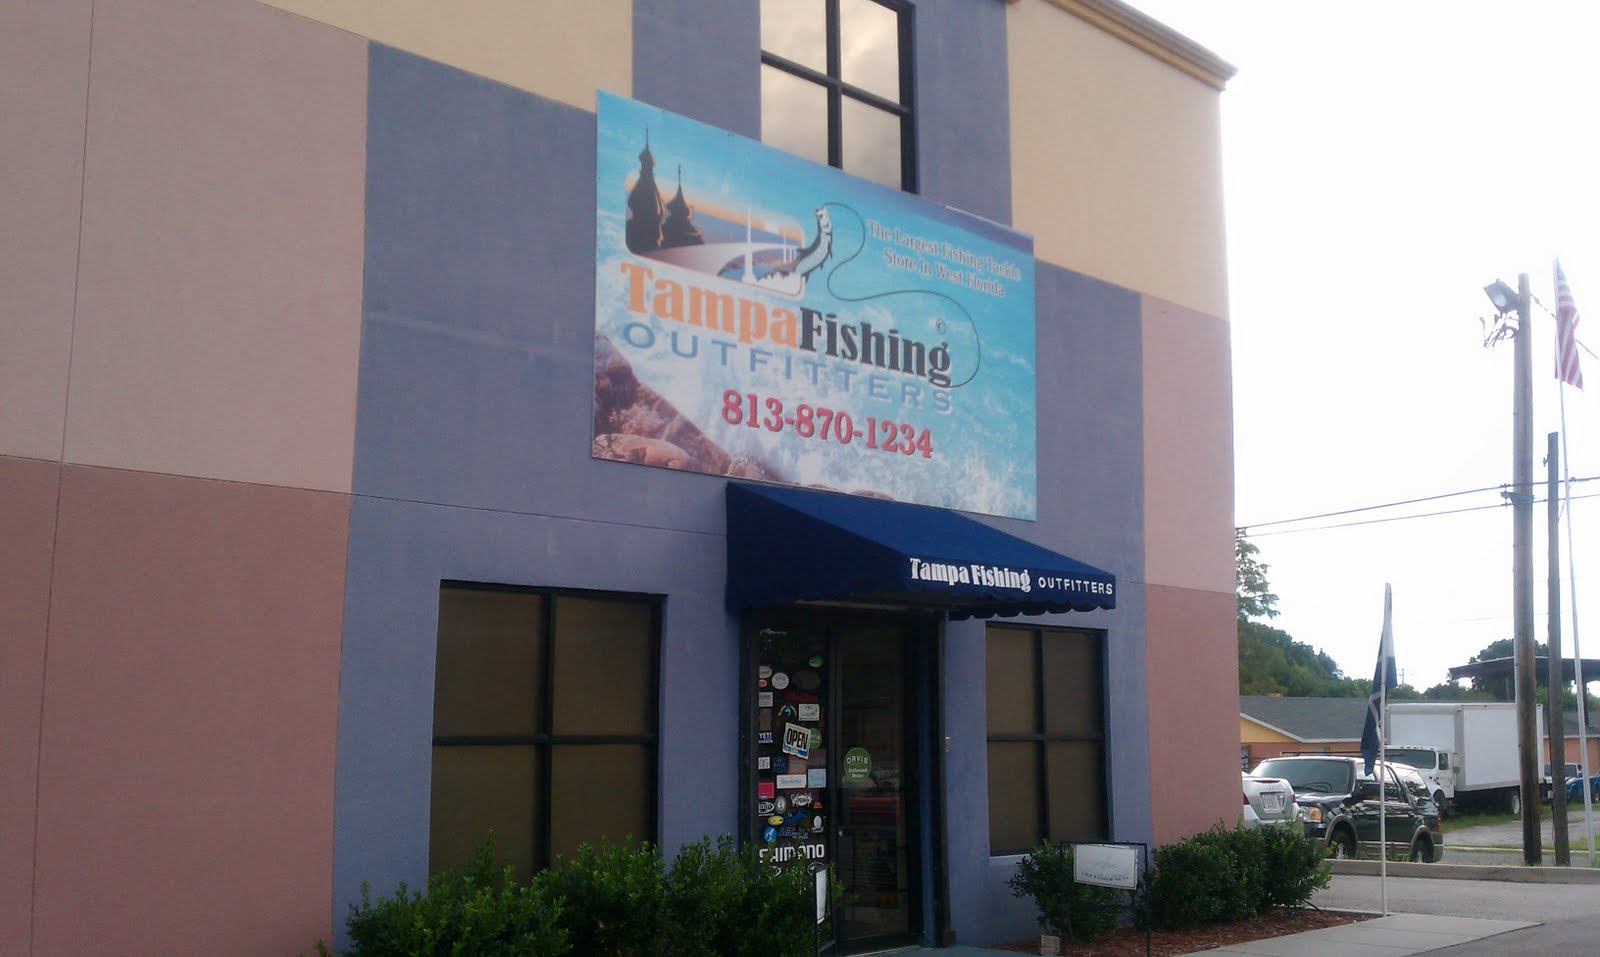 Tampabayfish tampa fishing outfitters one of tampas for Tampa fishing outfitters